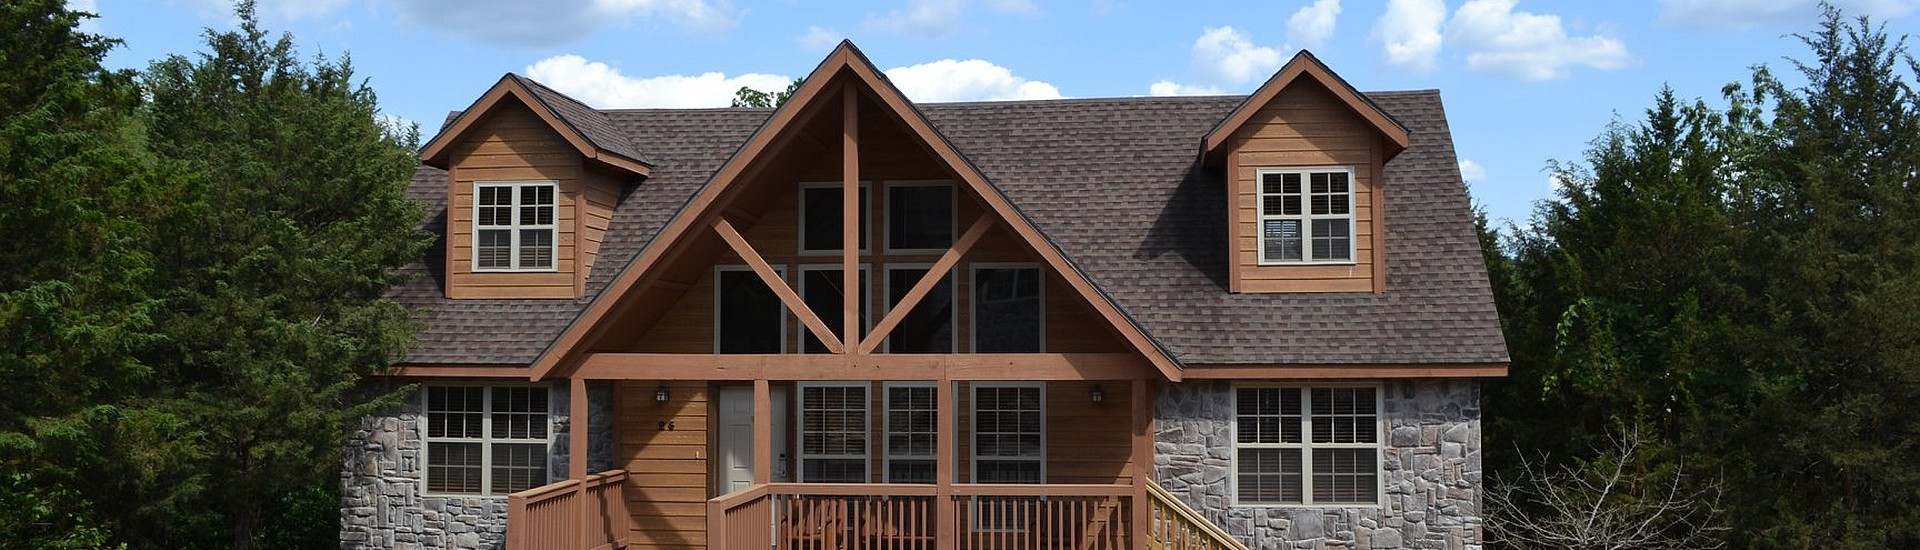 5 Amazing Branson Cabins For Your Vacation Branson